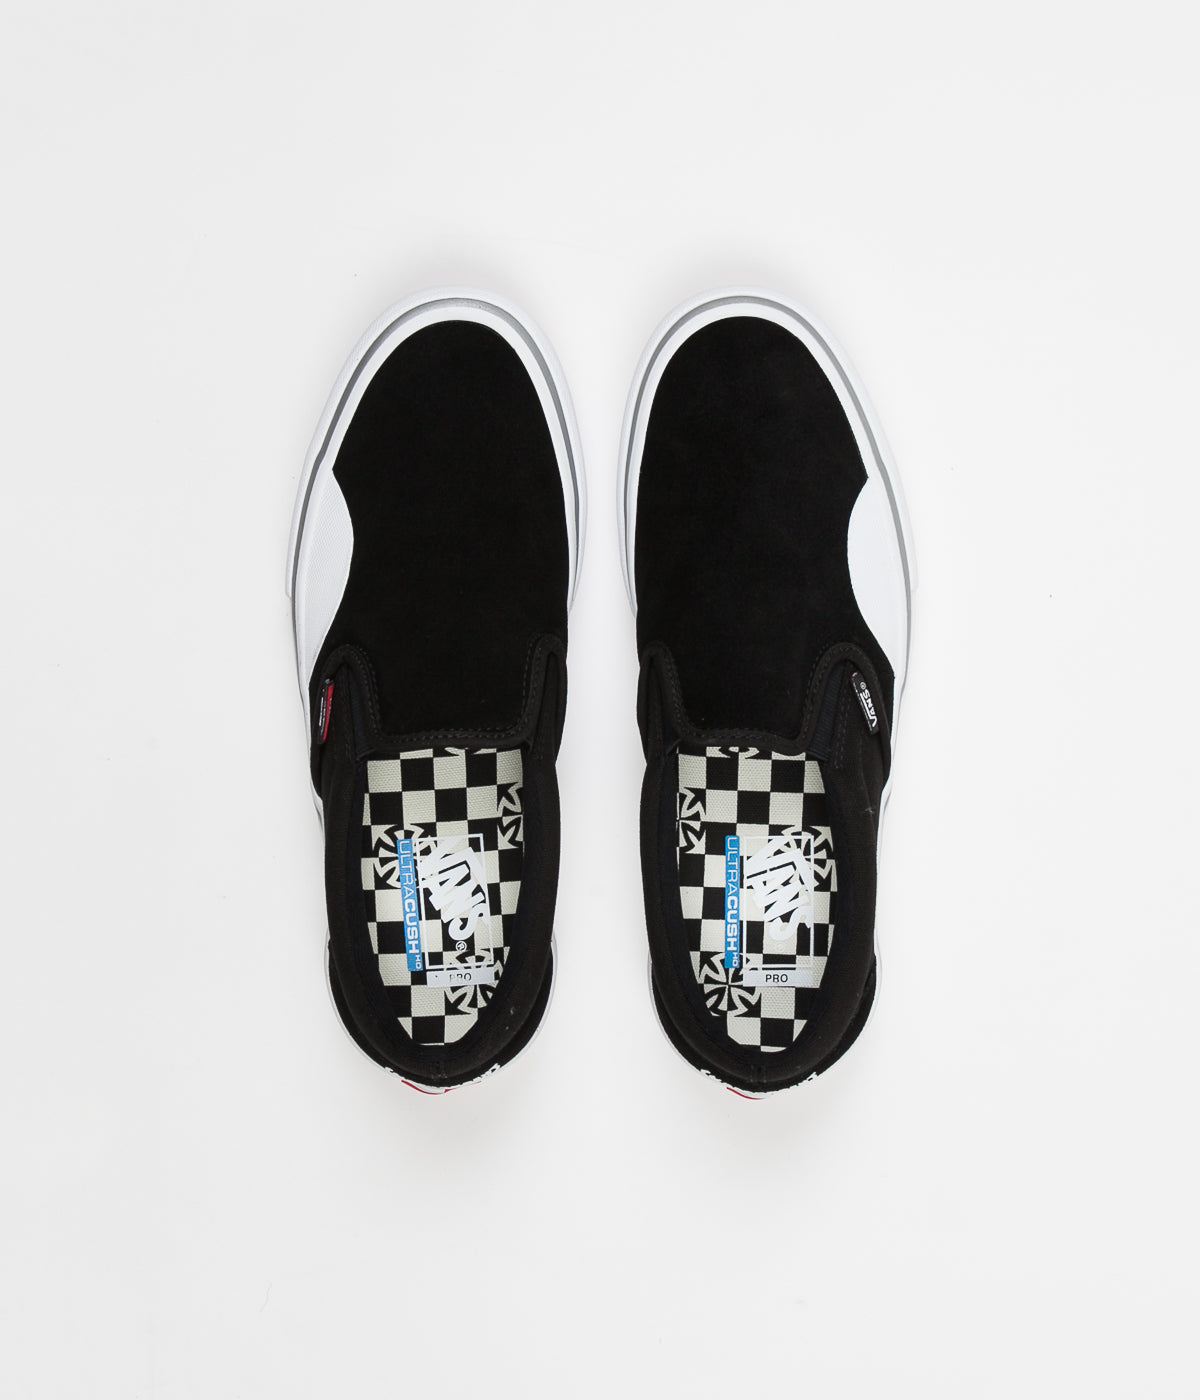 69903b164b5bda Vans x Independent Slip On Pro Shoes - Black   White ...